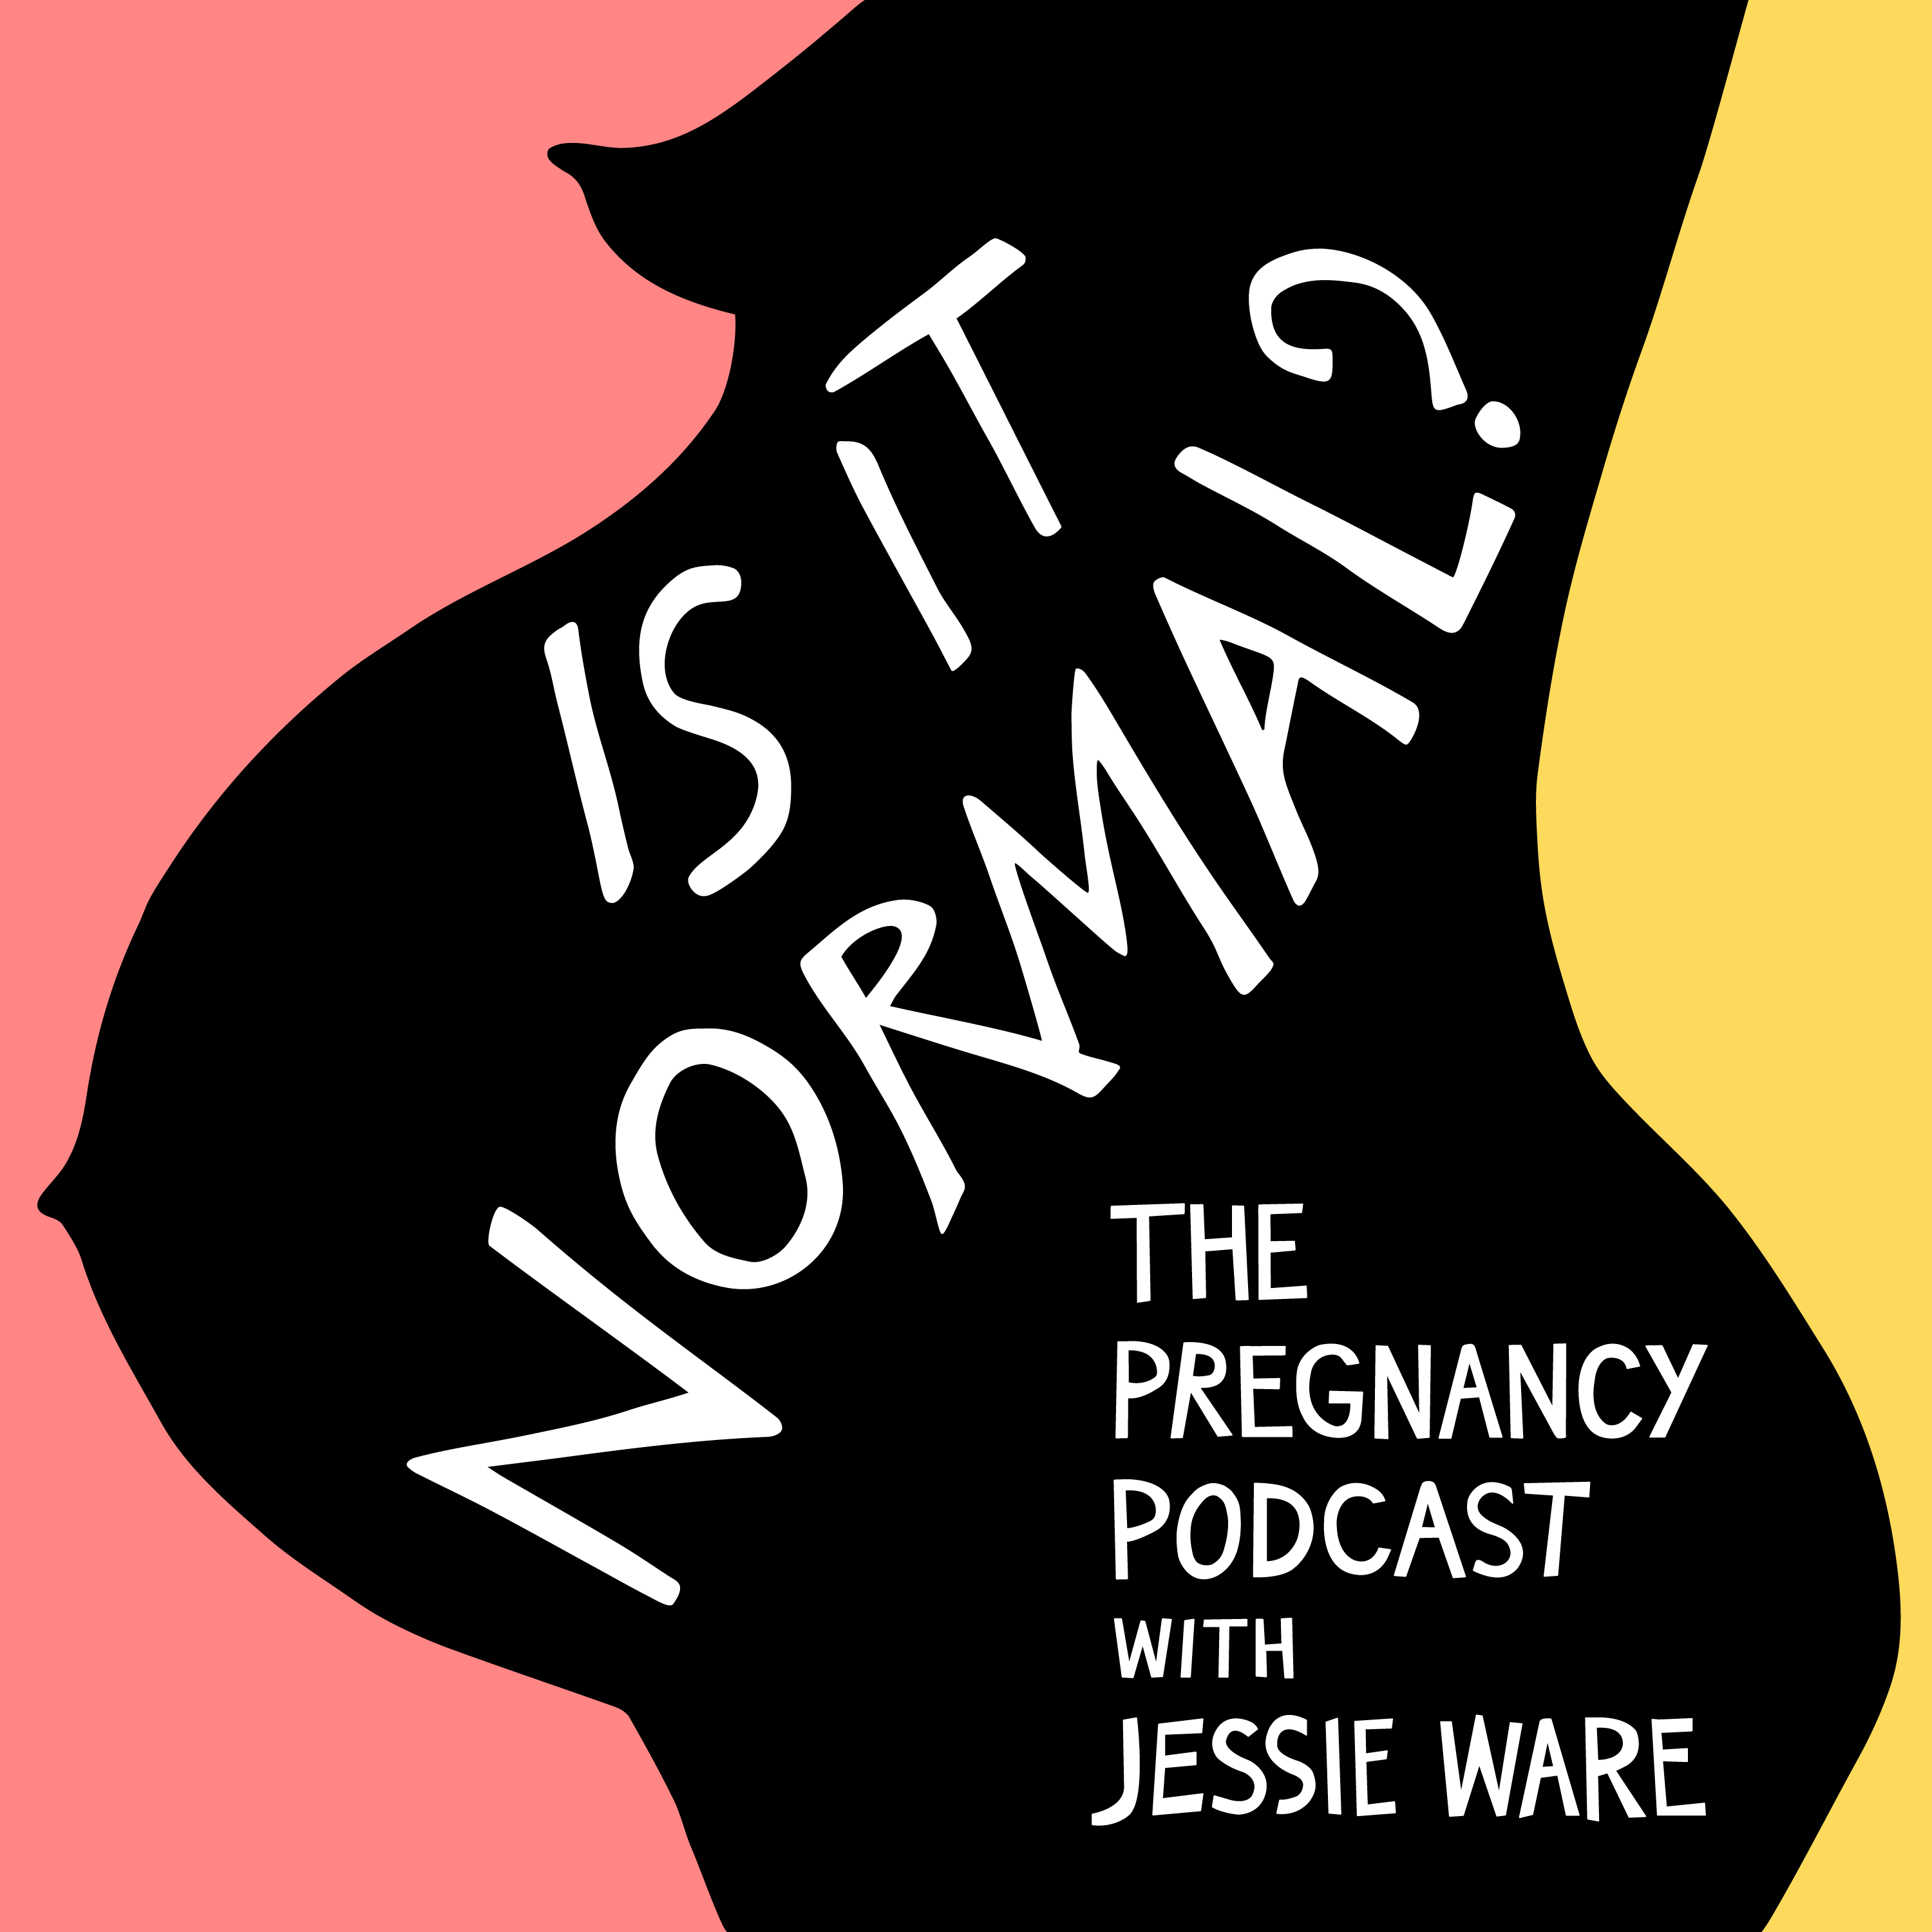 Ep 9 - Weeks 20-22 of your pregnancy